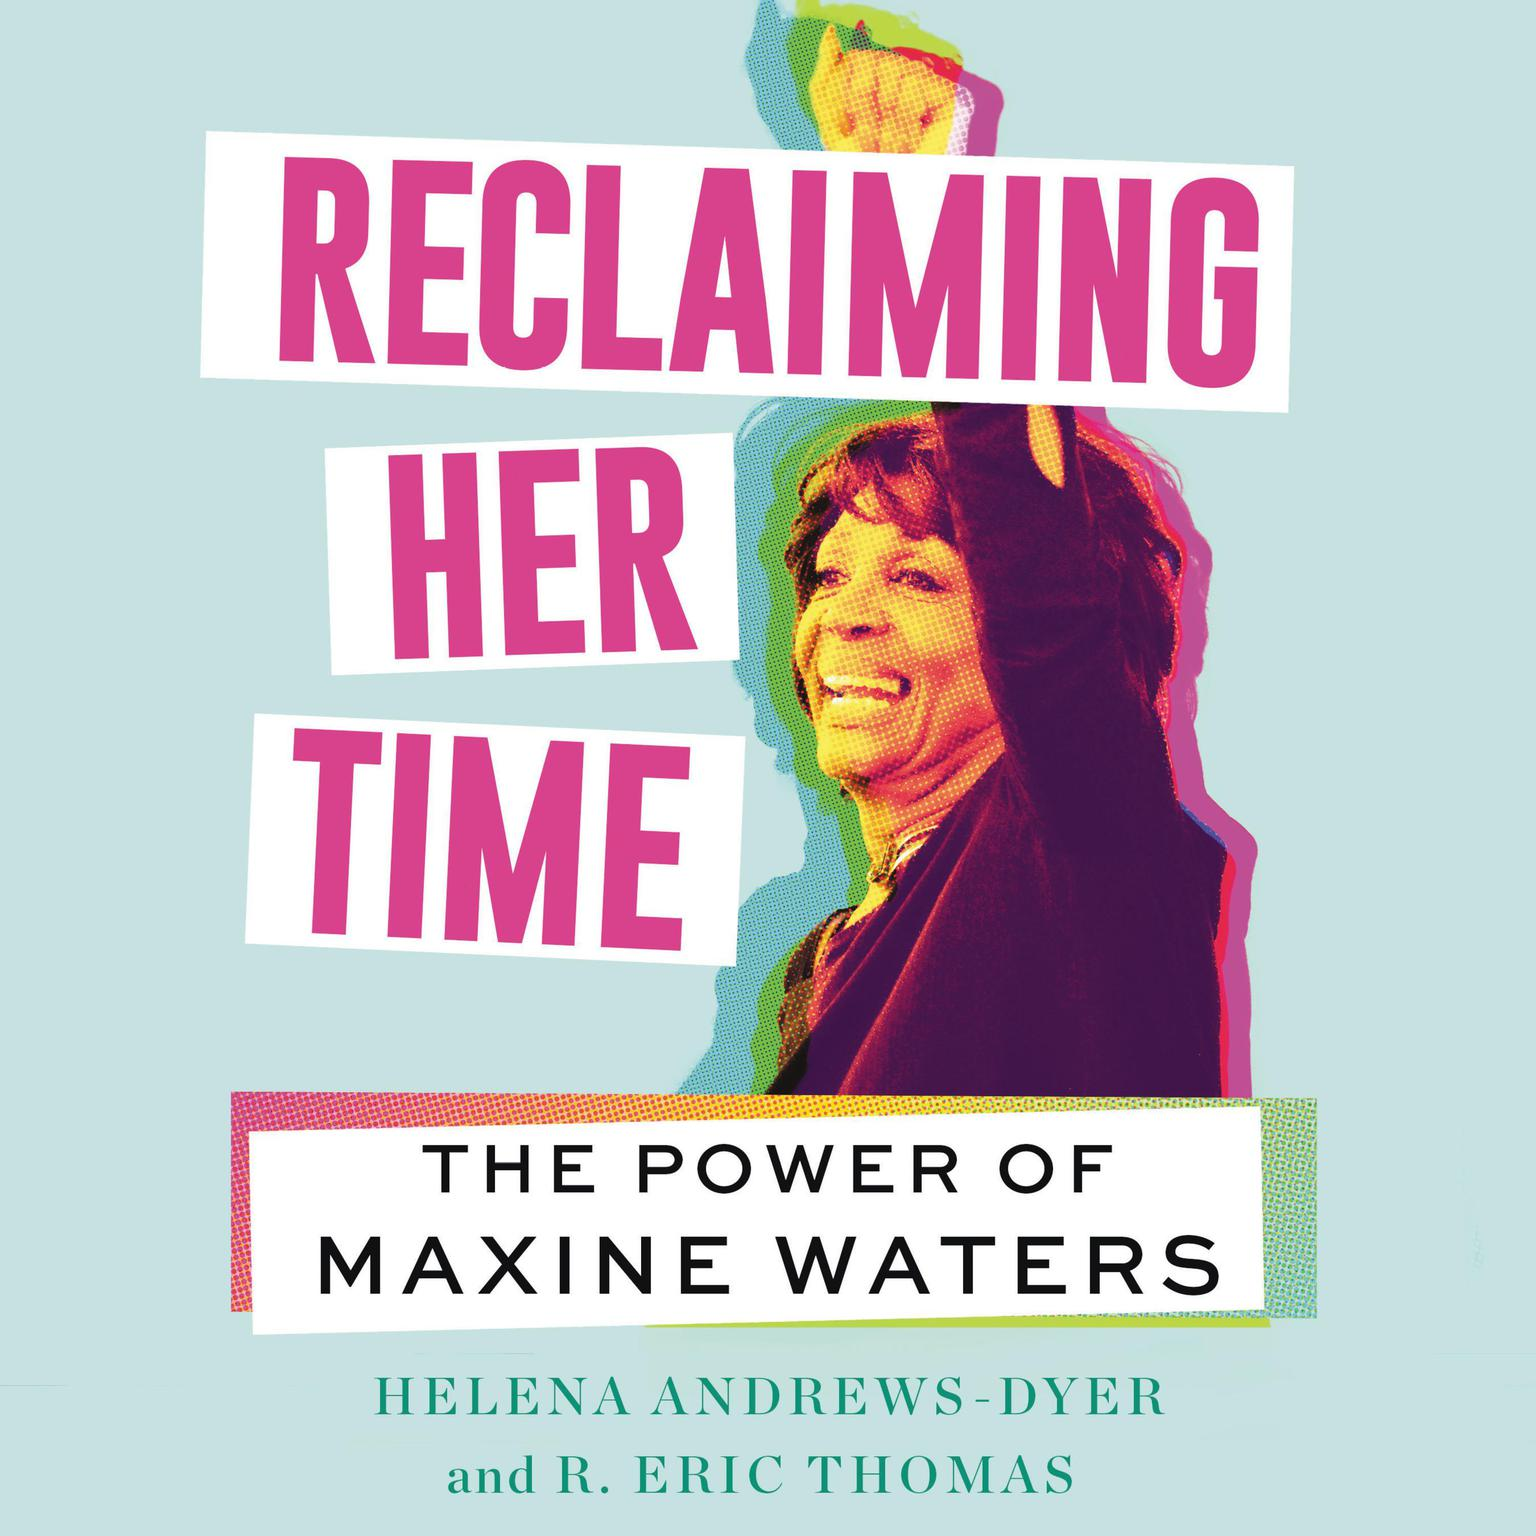 Reclaiming Her Time: The Power of Maxine Waters Audiobook, by Helena Andrews-Dyer